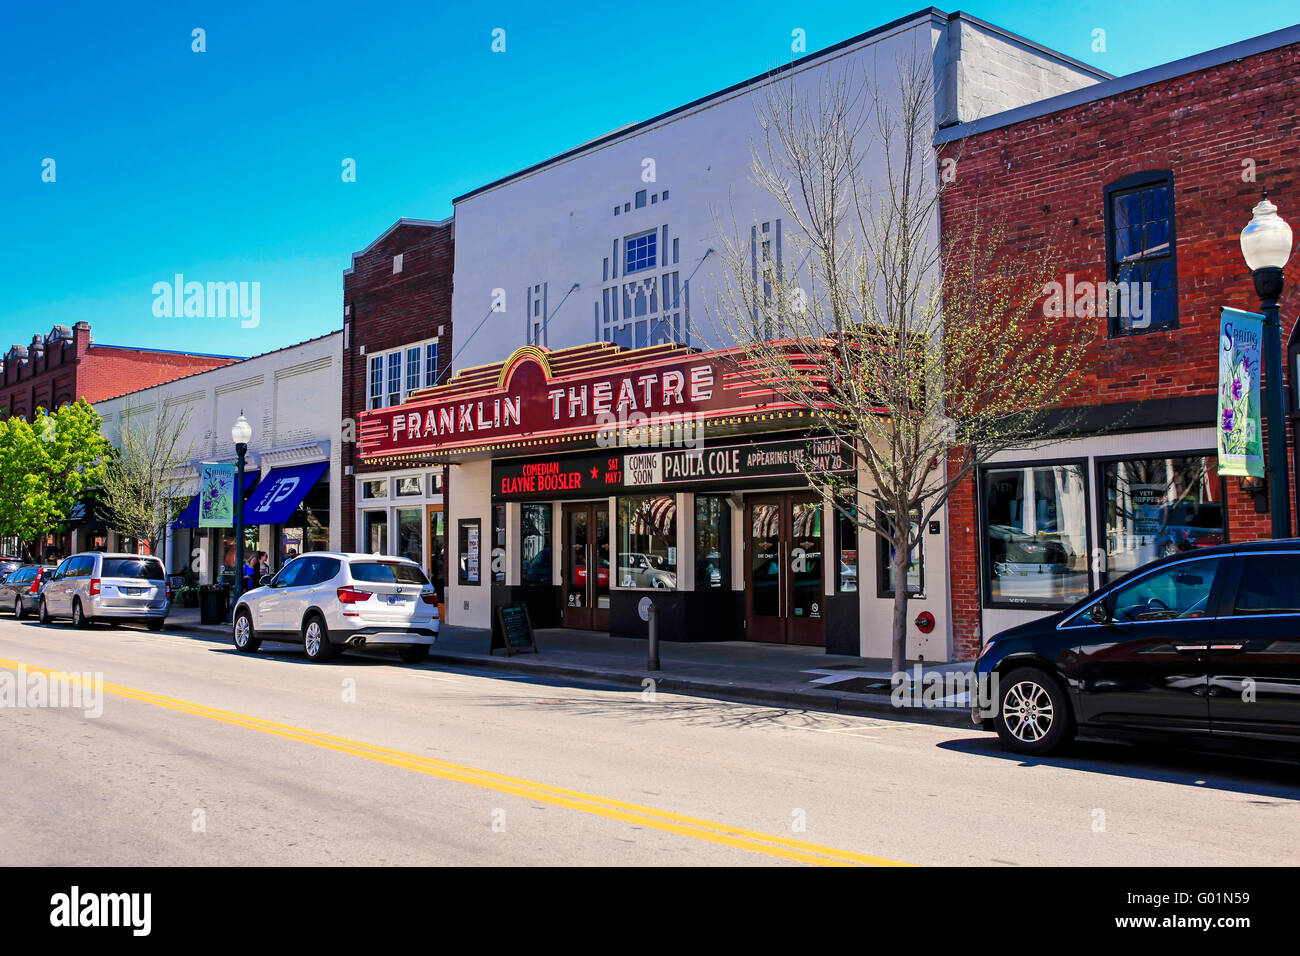 Downtown Franklin Tn >> The Franklin Theatre on Main Street in downtown Franklin, Tennessee Stock Photo: 103300773 - Alamy